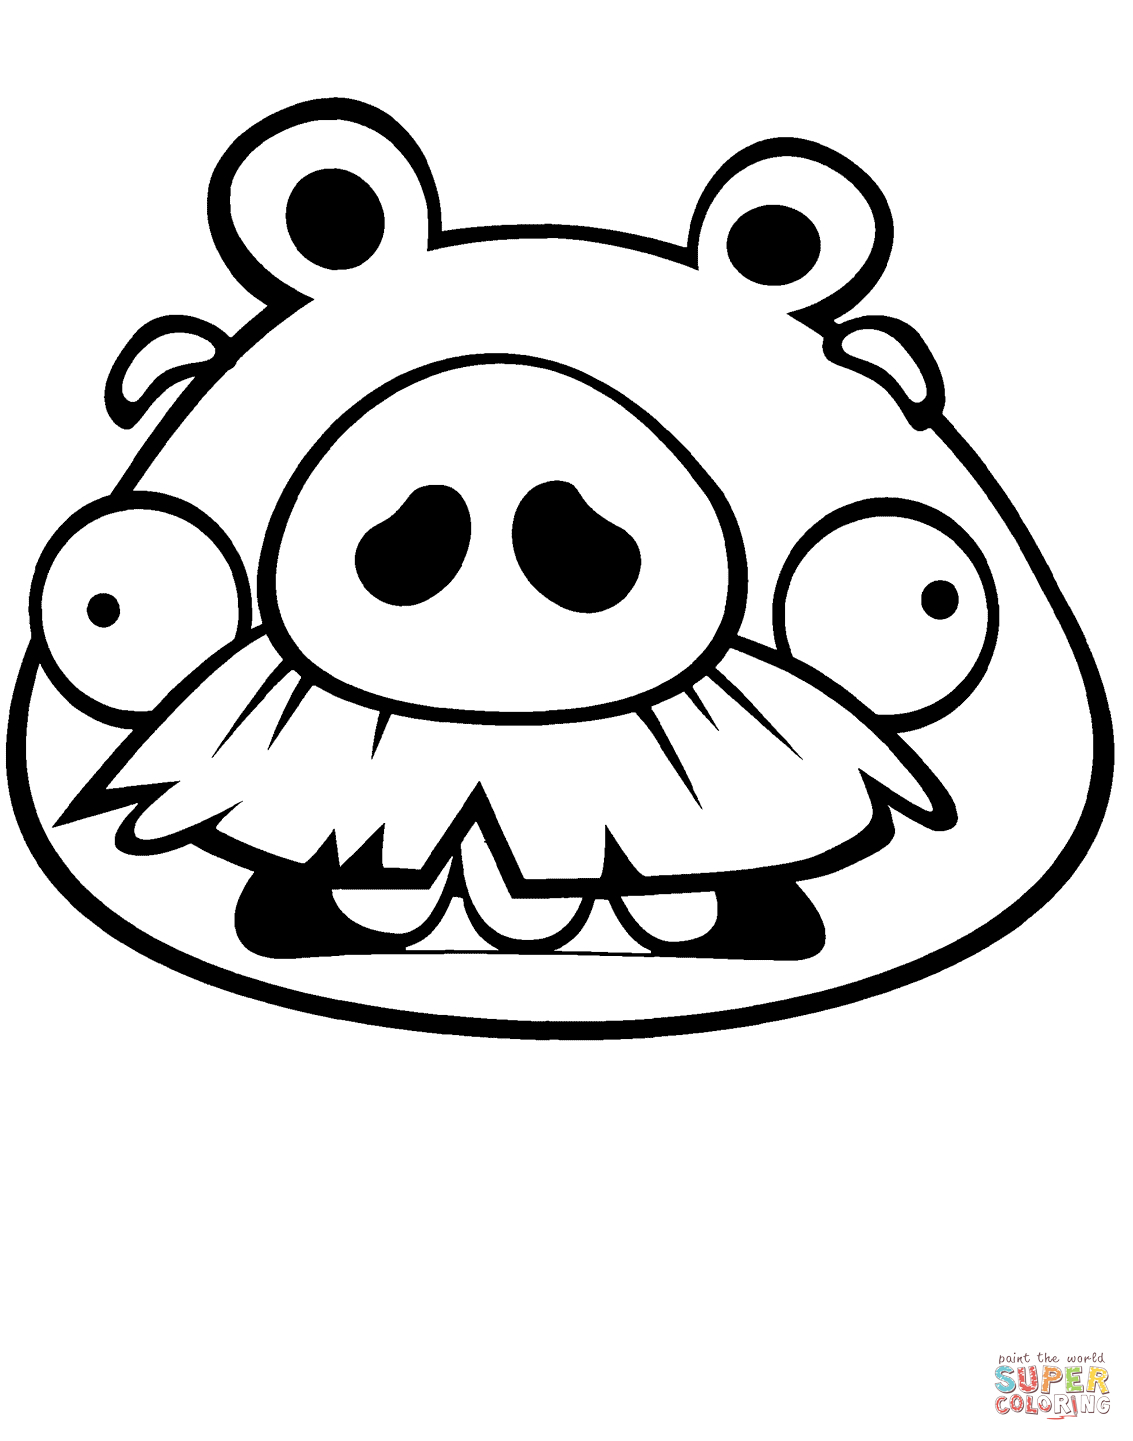 Foreman Pig Coloring Page